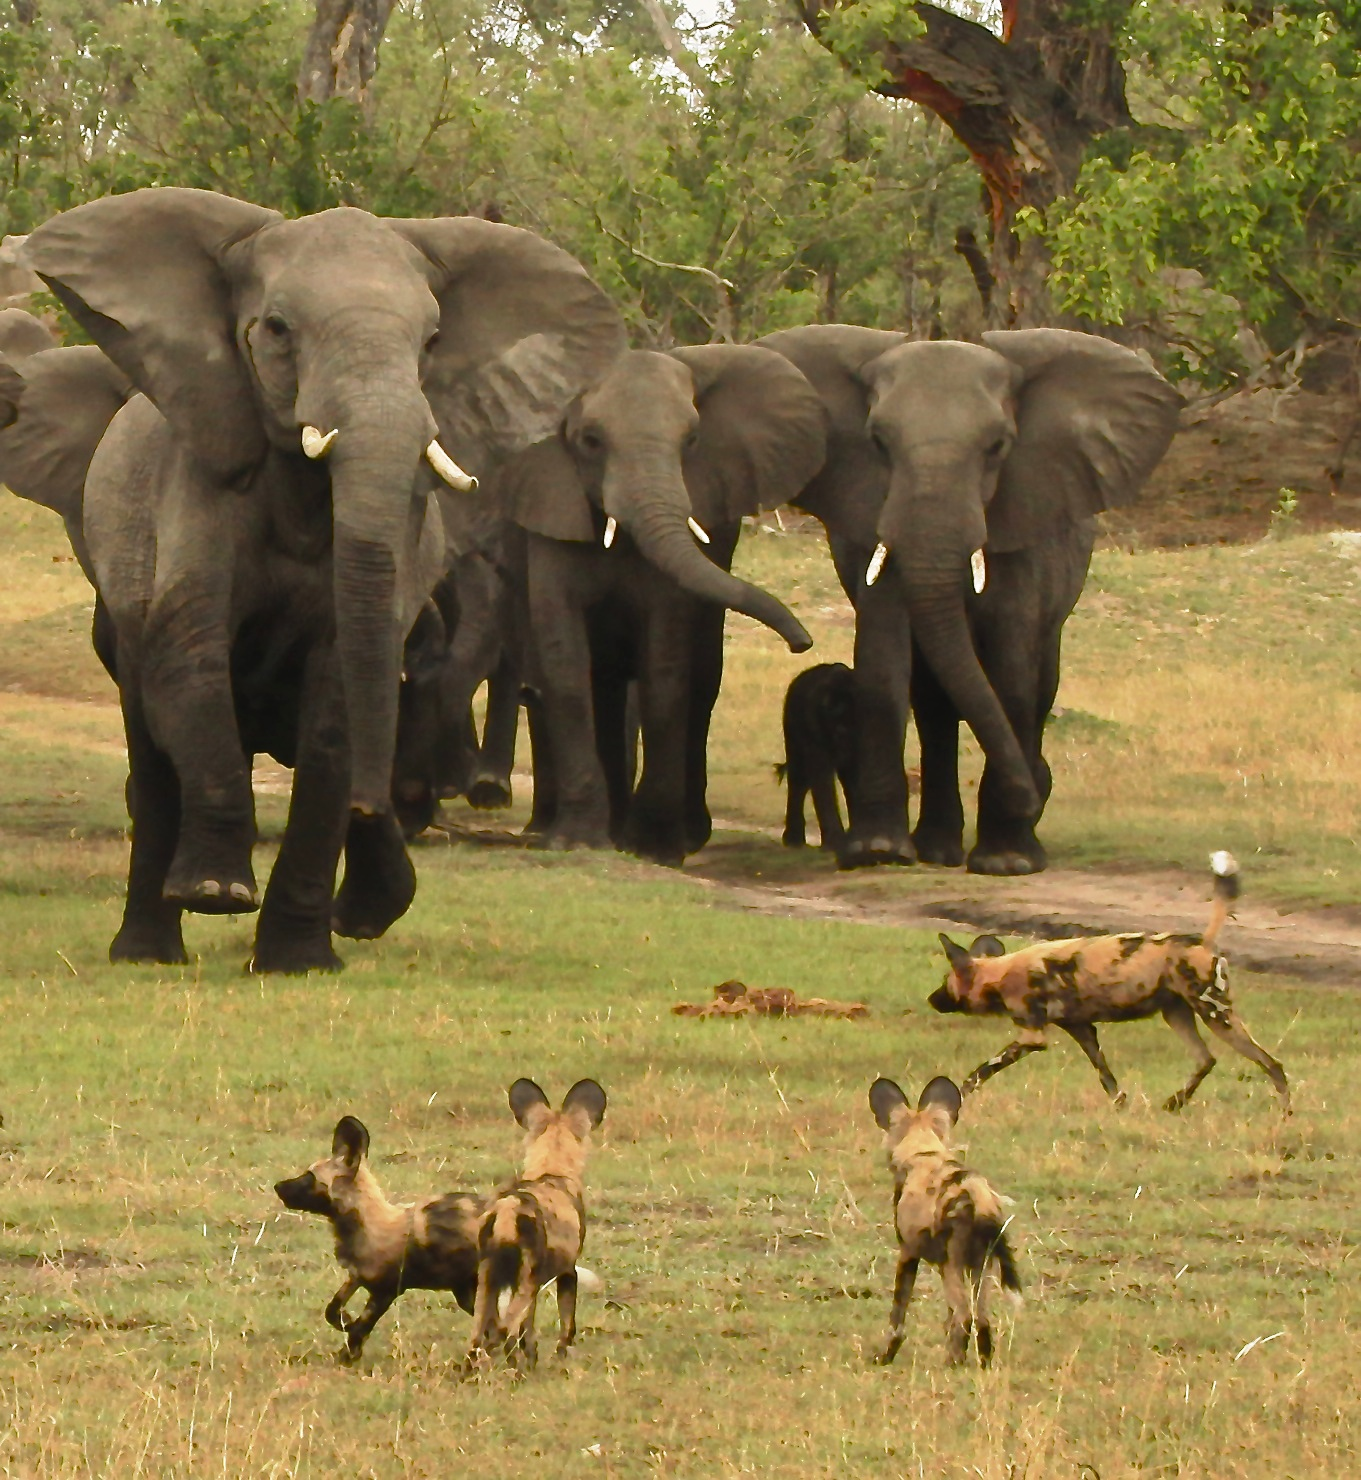 Elephant vs Wild Dog